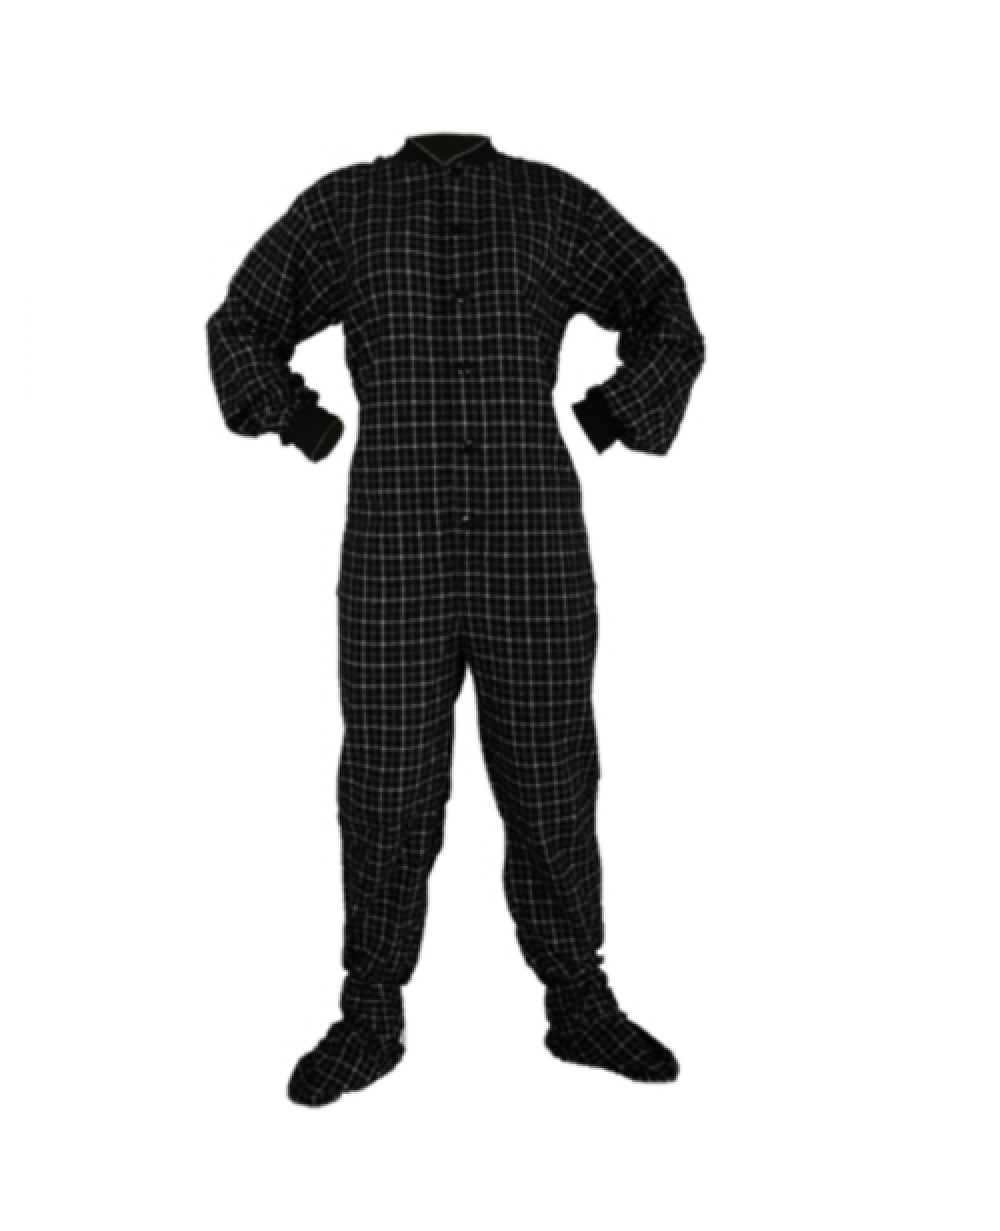 1e02177c5e9a More Views. Black and White Flannel Adult Footed Pajamas